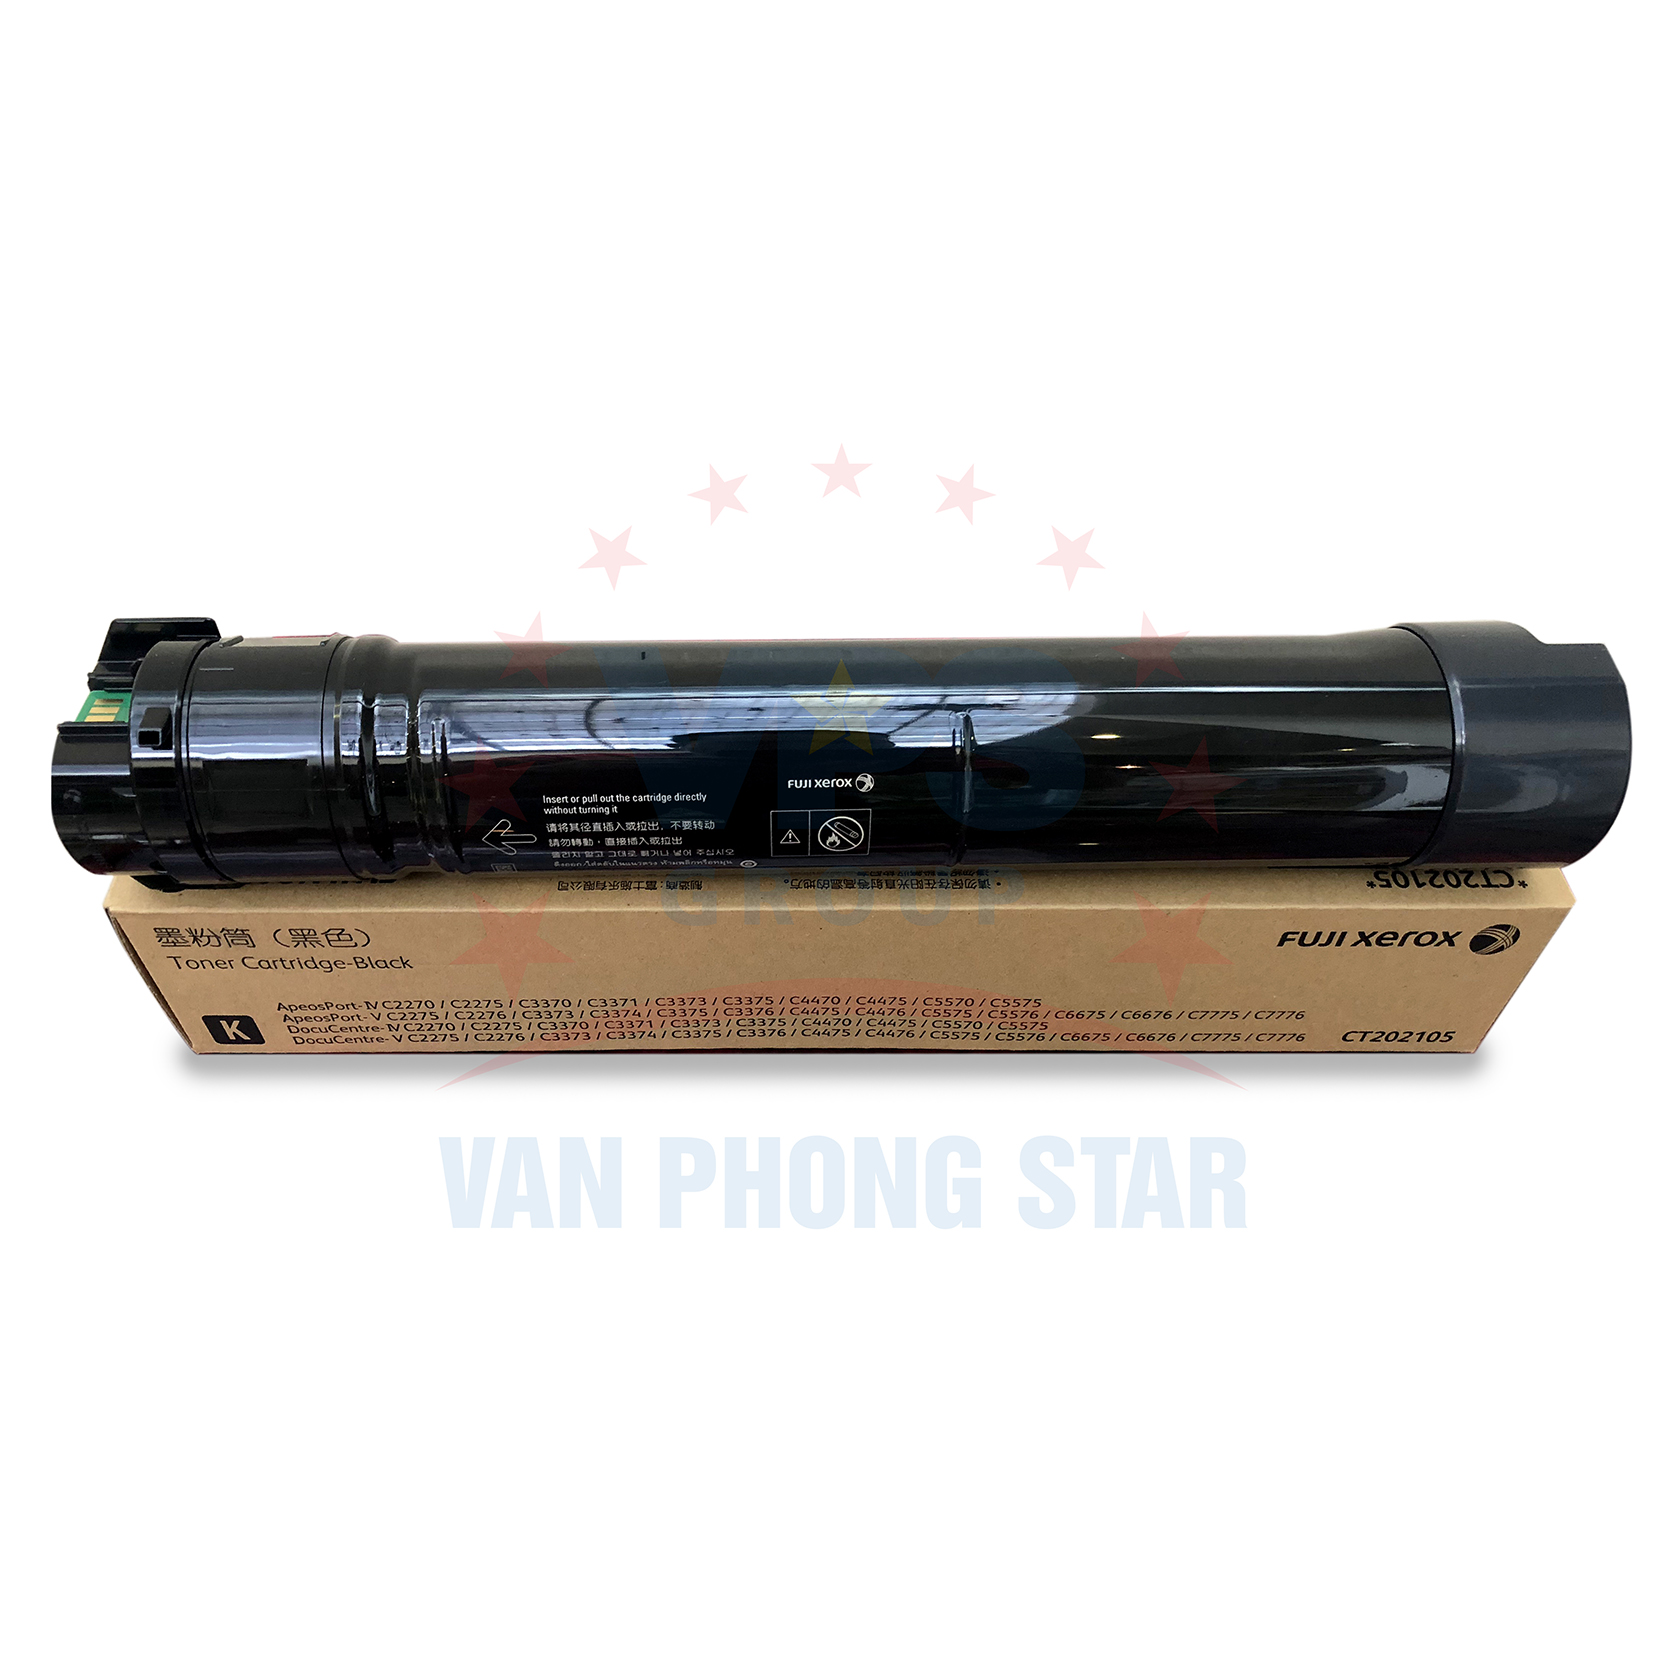 muc-may-photocopy-mau-xerox-dc-iv-c2270-3370-4470-4475-3375-3373-ct202105-toner-